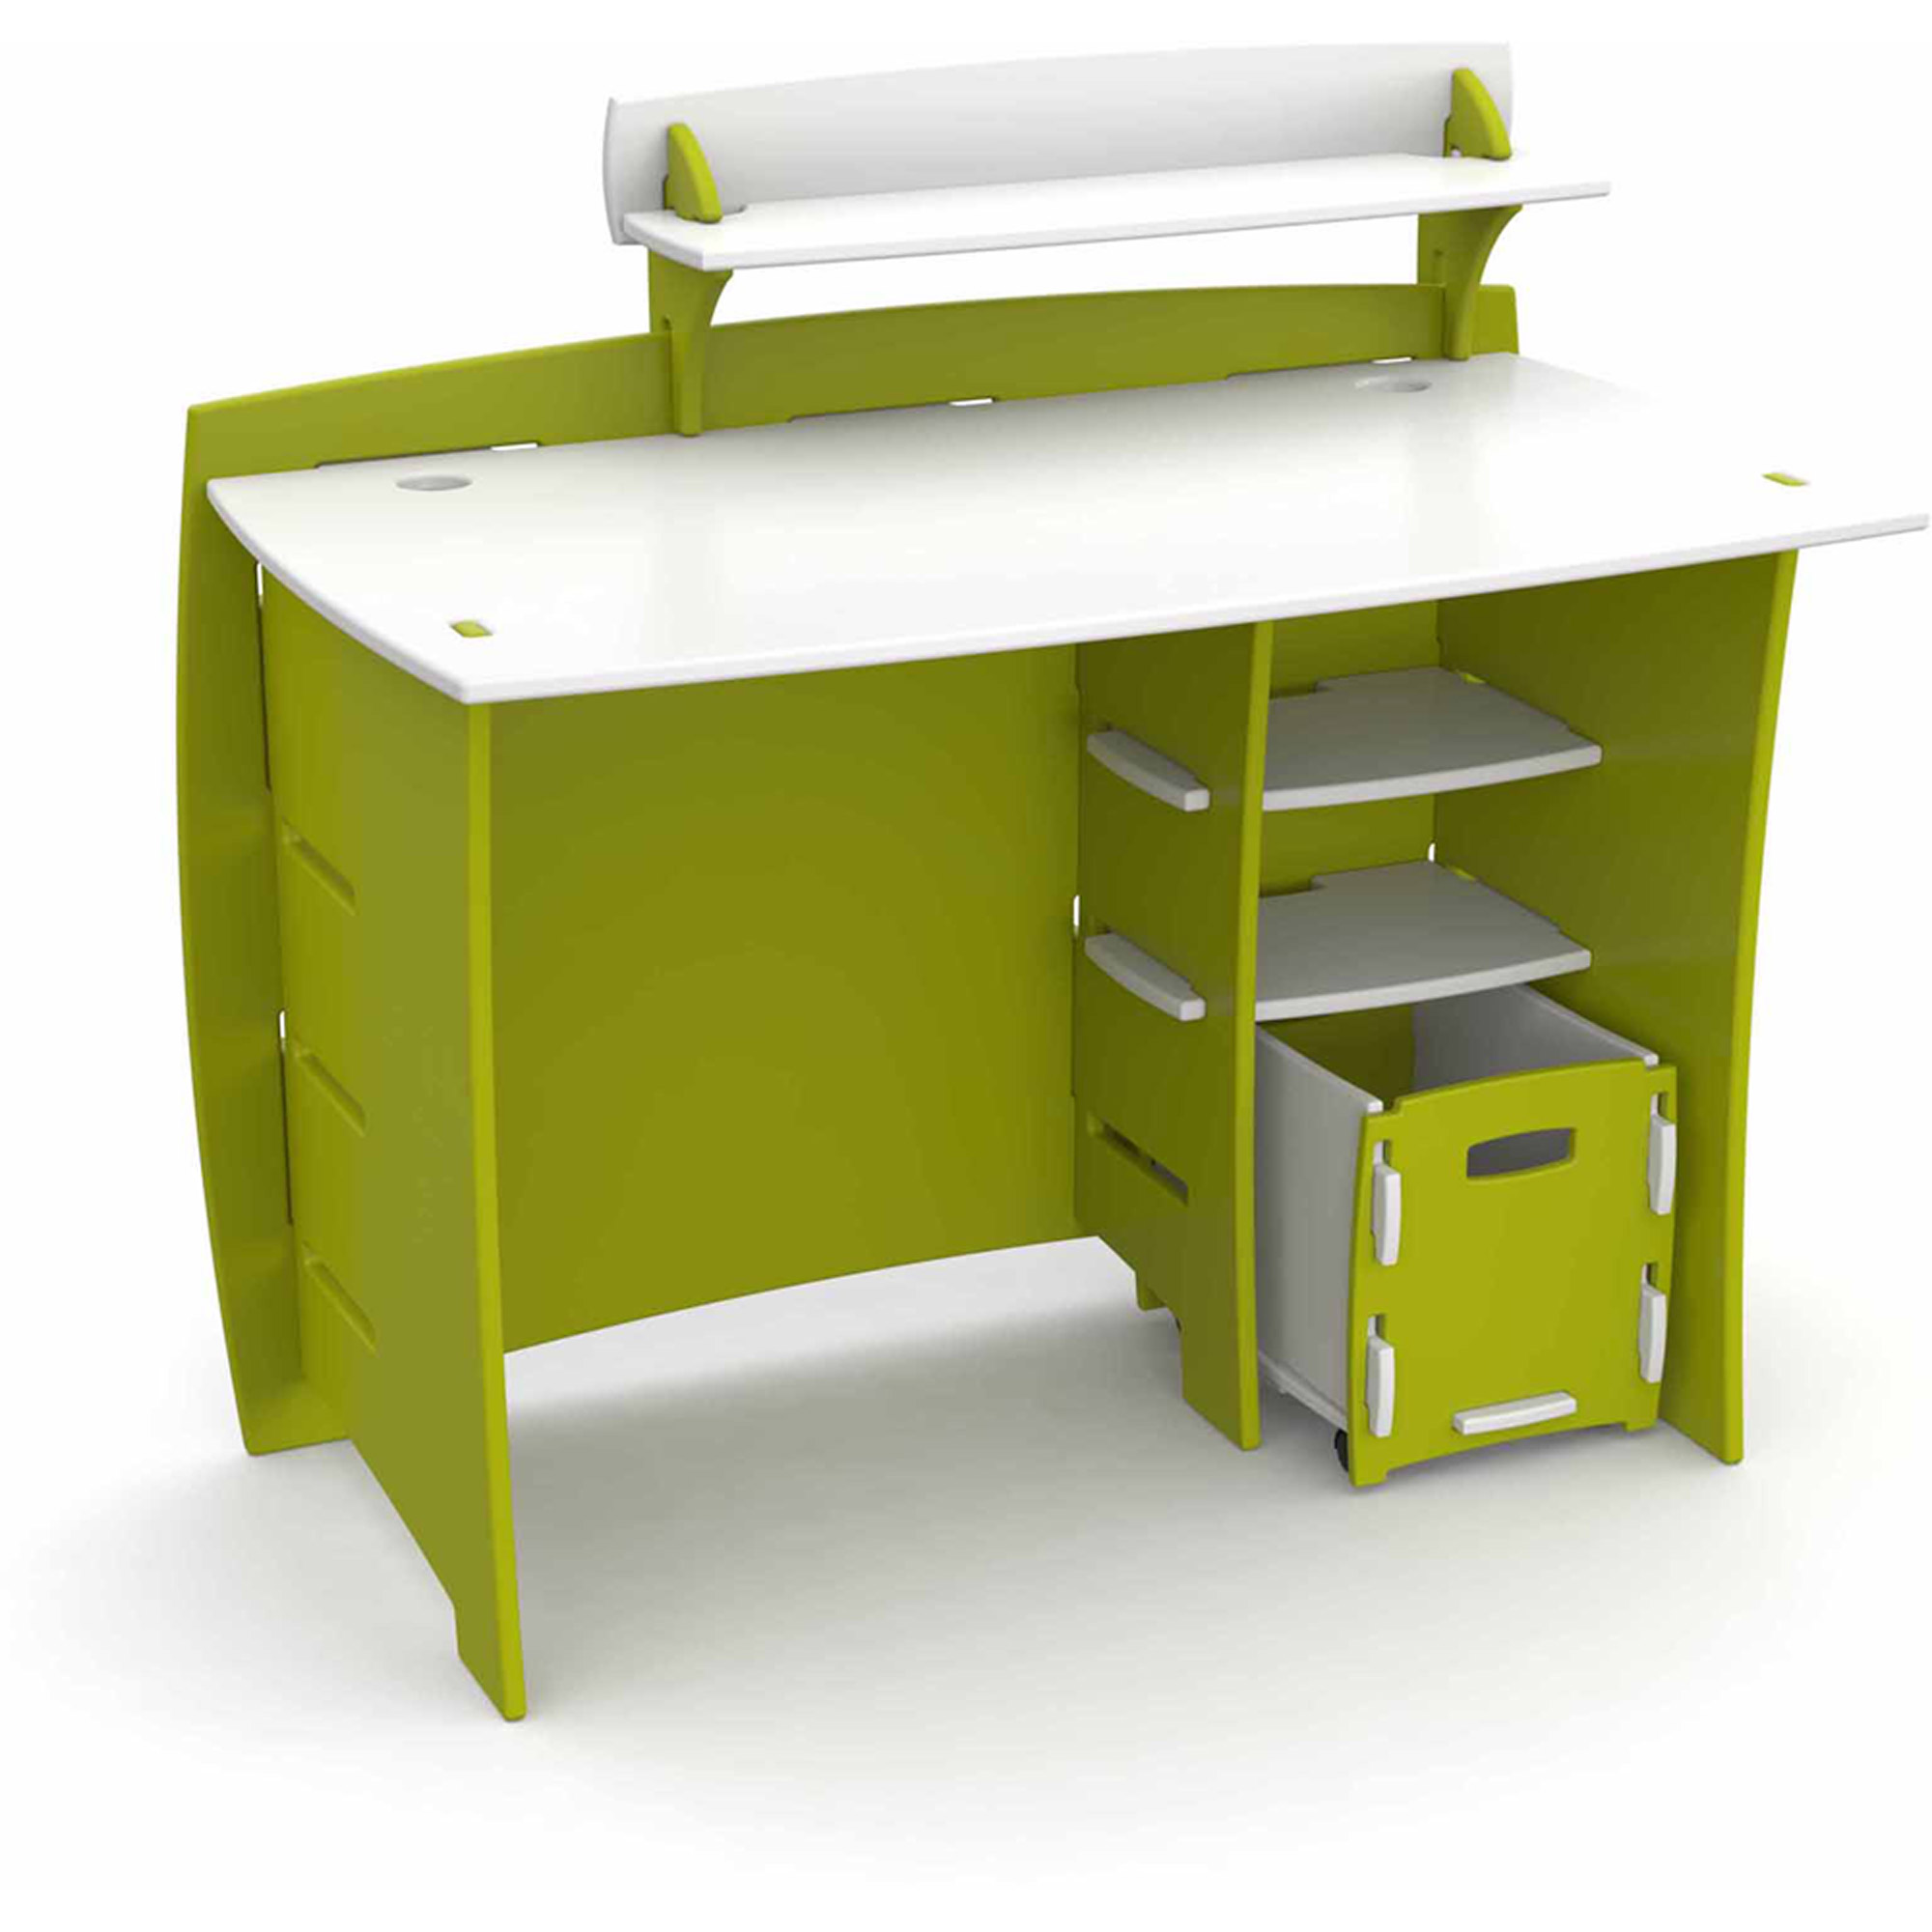 Beautiful Legare Kids Furniture Frog Series Collection Complete Desk System Set, Lime  Green And White   Walmart.com